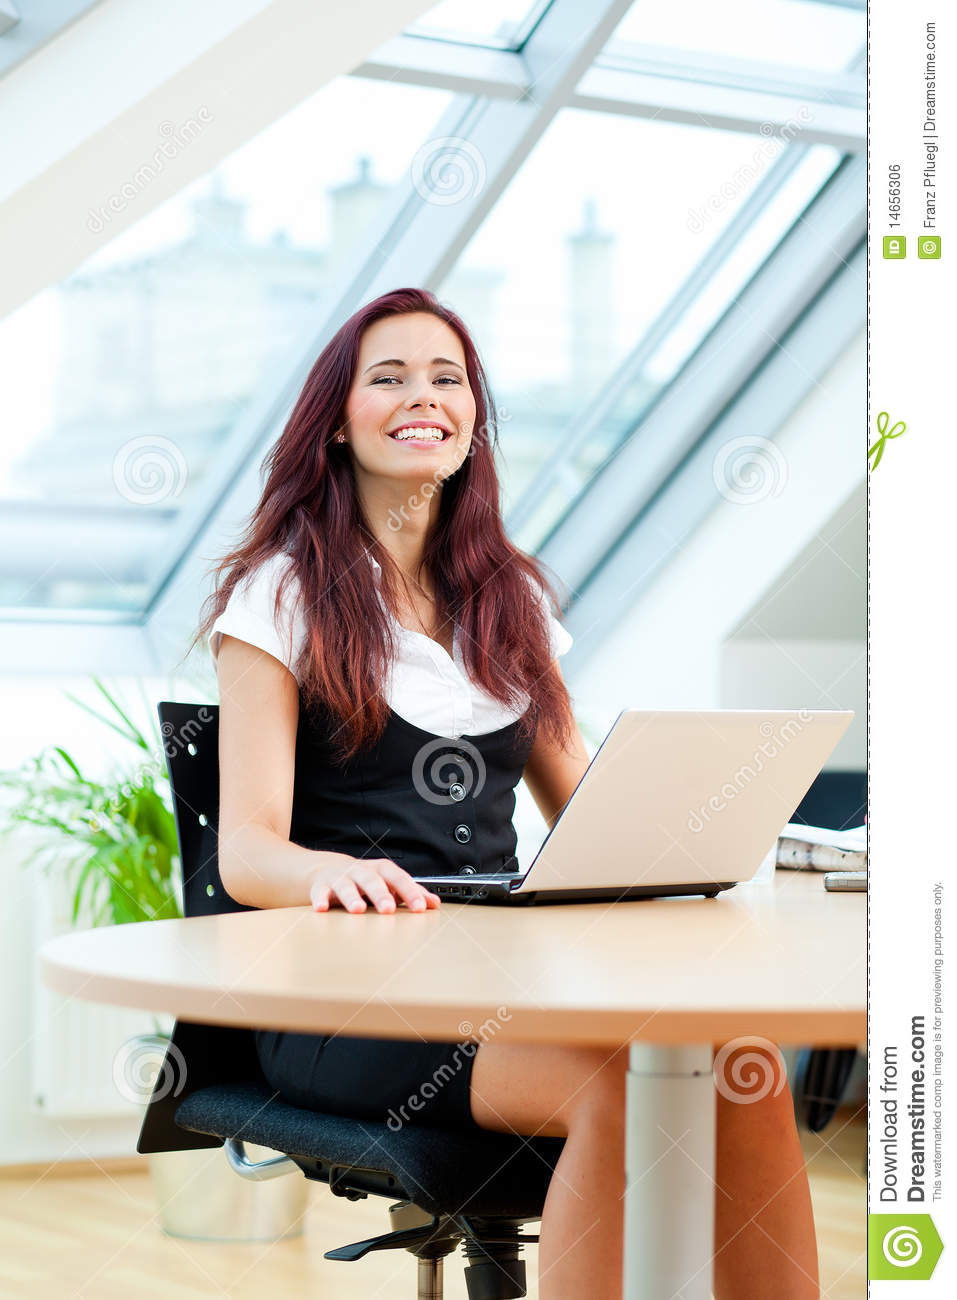 Happy Clerk Royalty Free Stock Image  Image 14656306